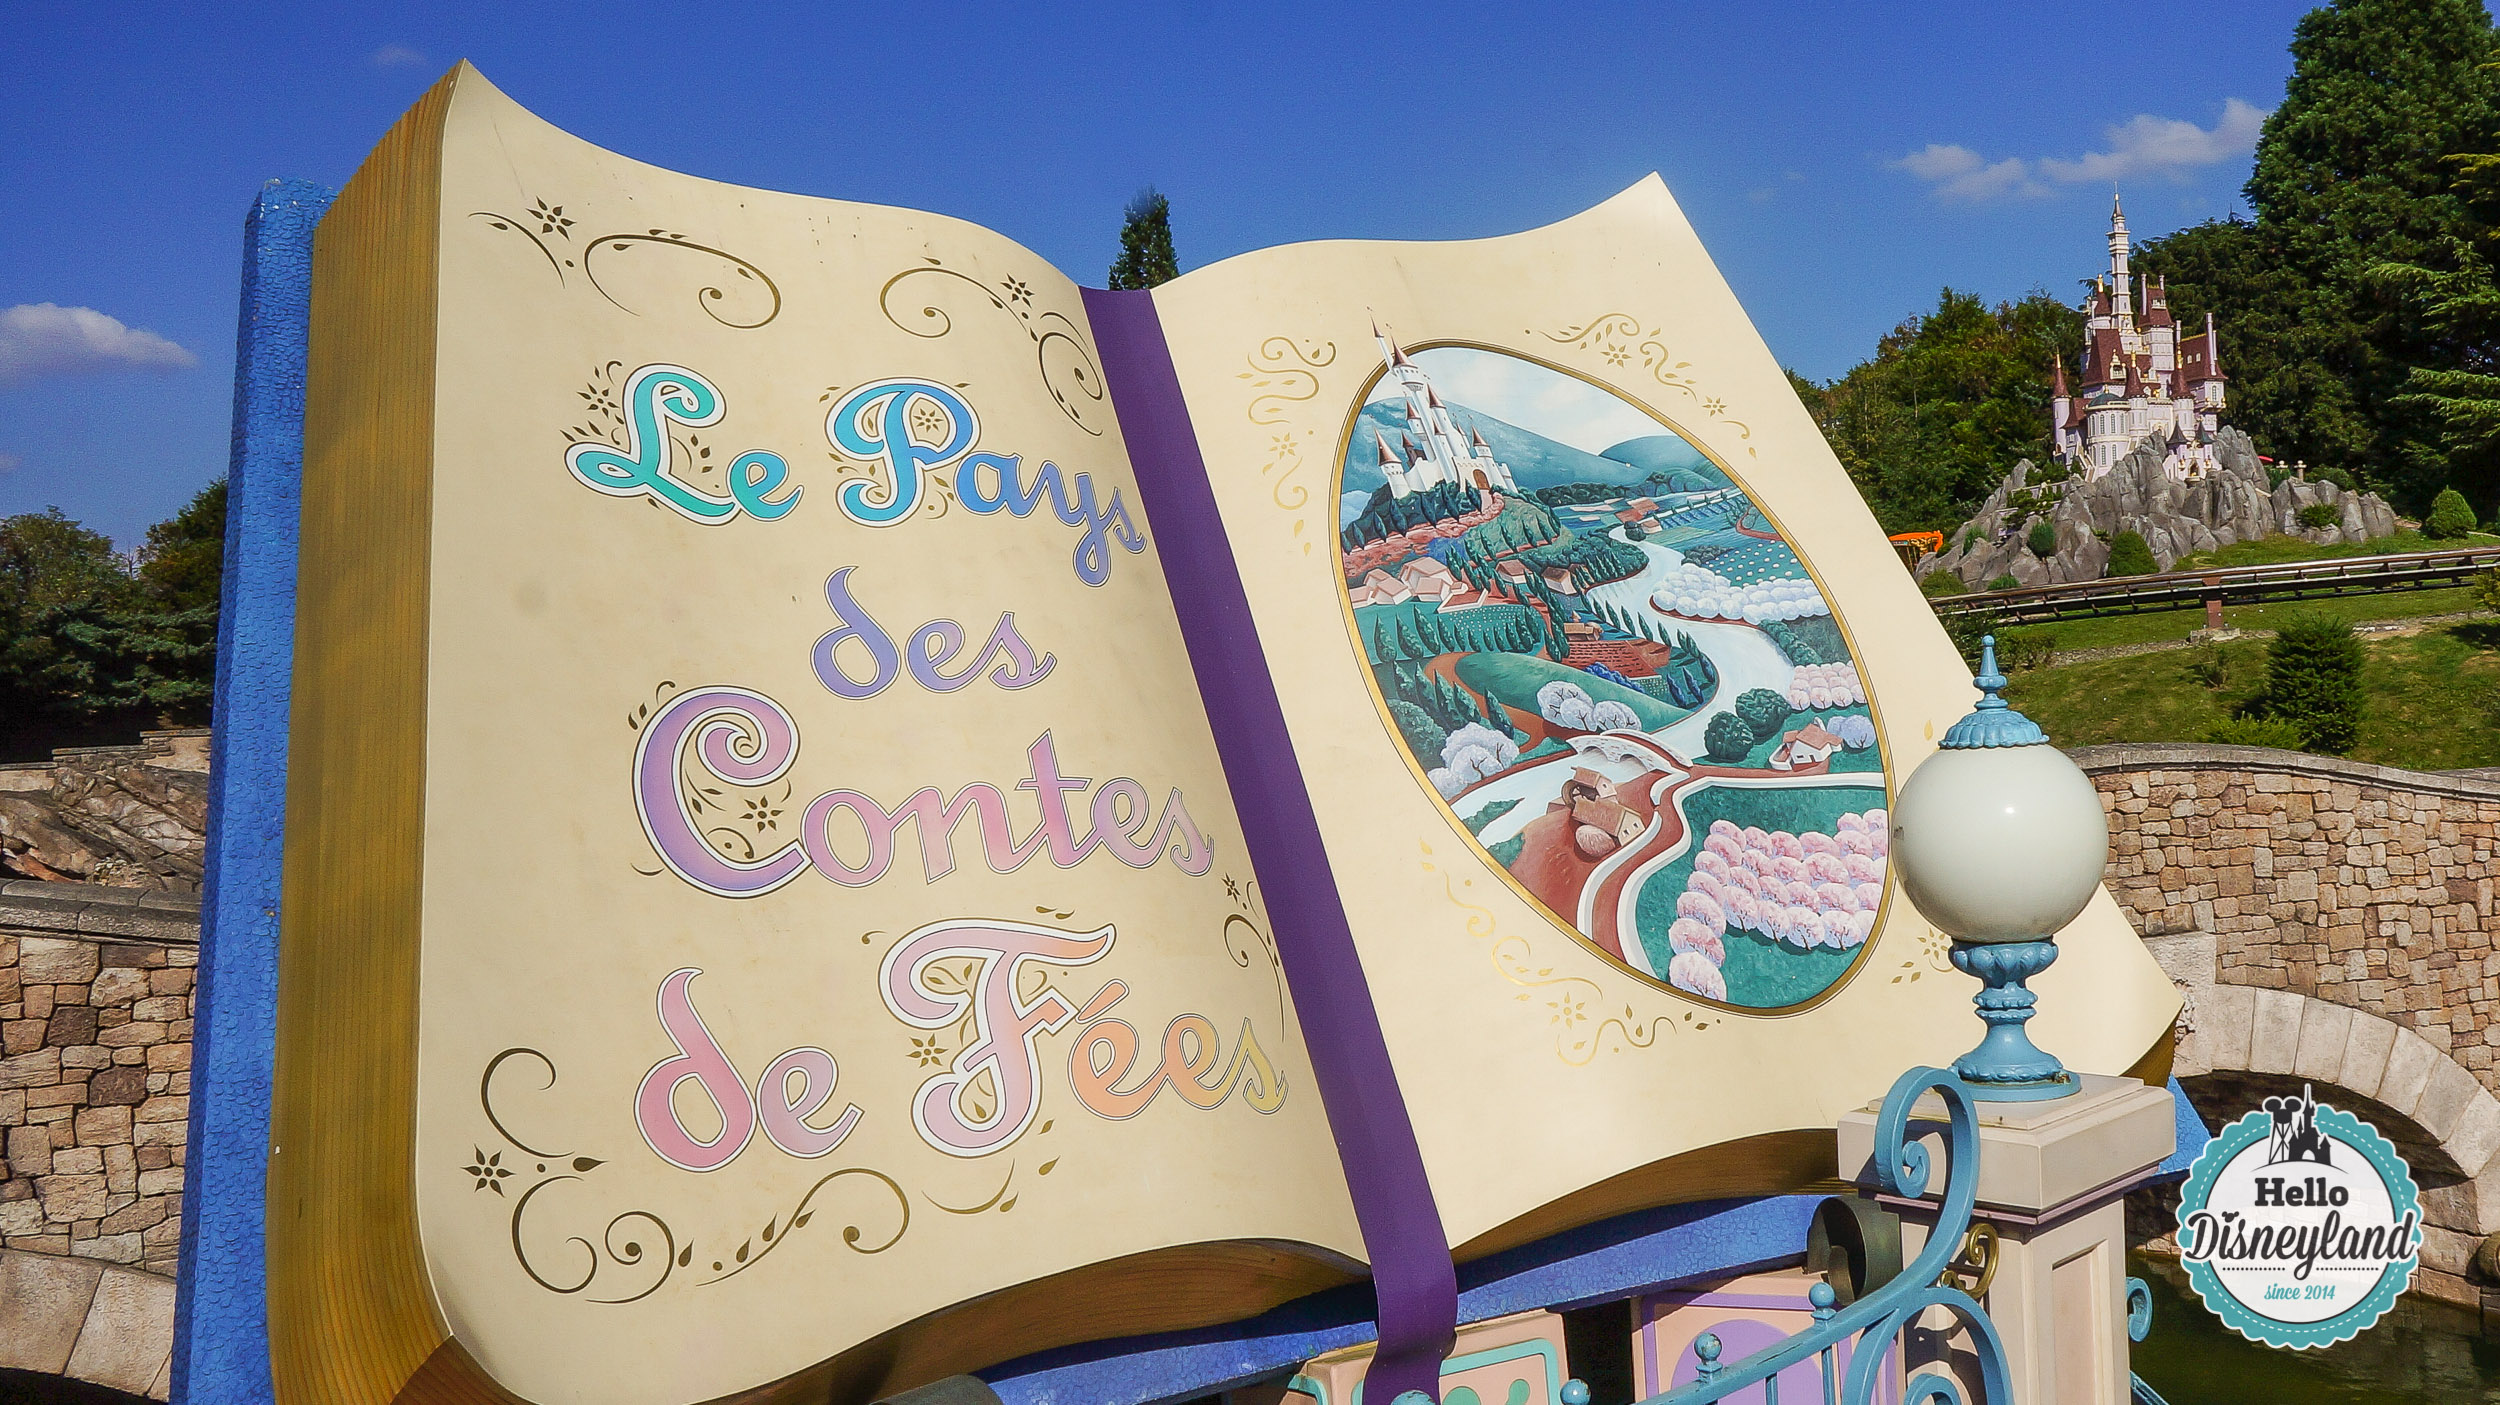 Hello disneyland le blog n 1 sur disneyland paris le pays des contes de f - Decoration conte de fee ...